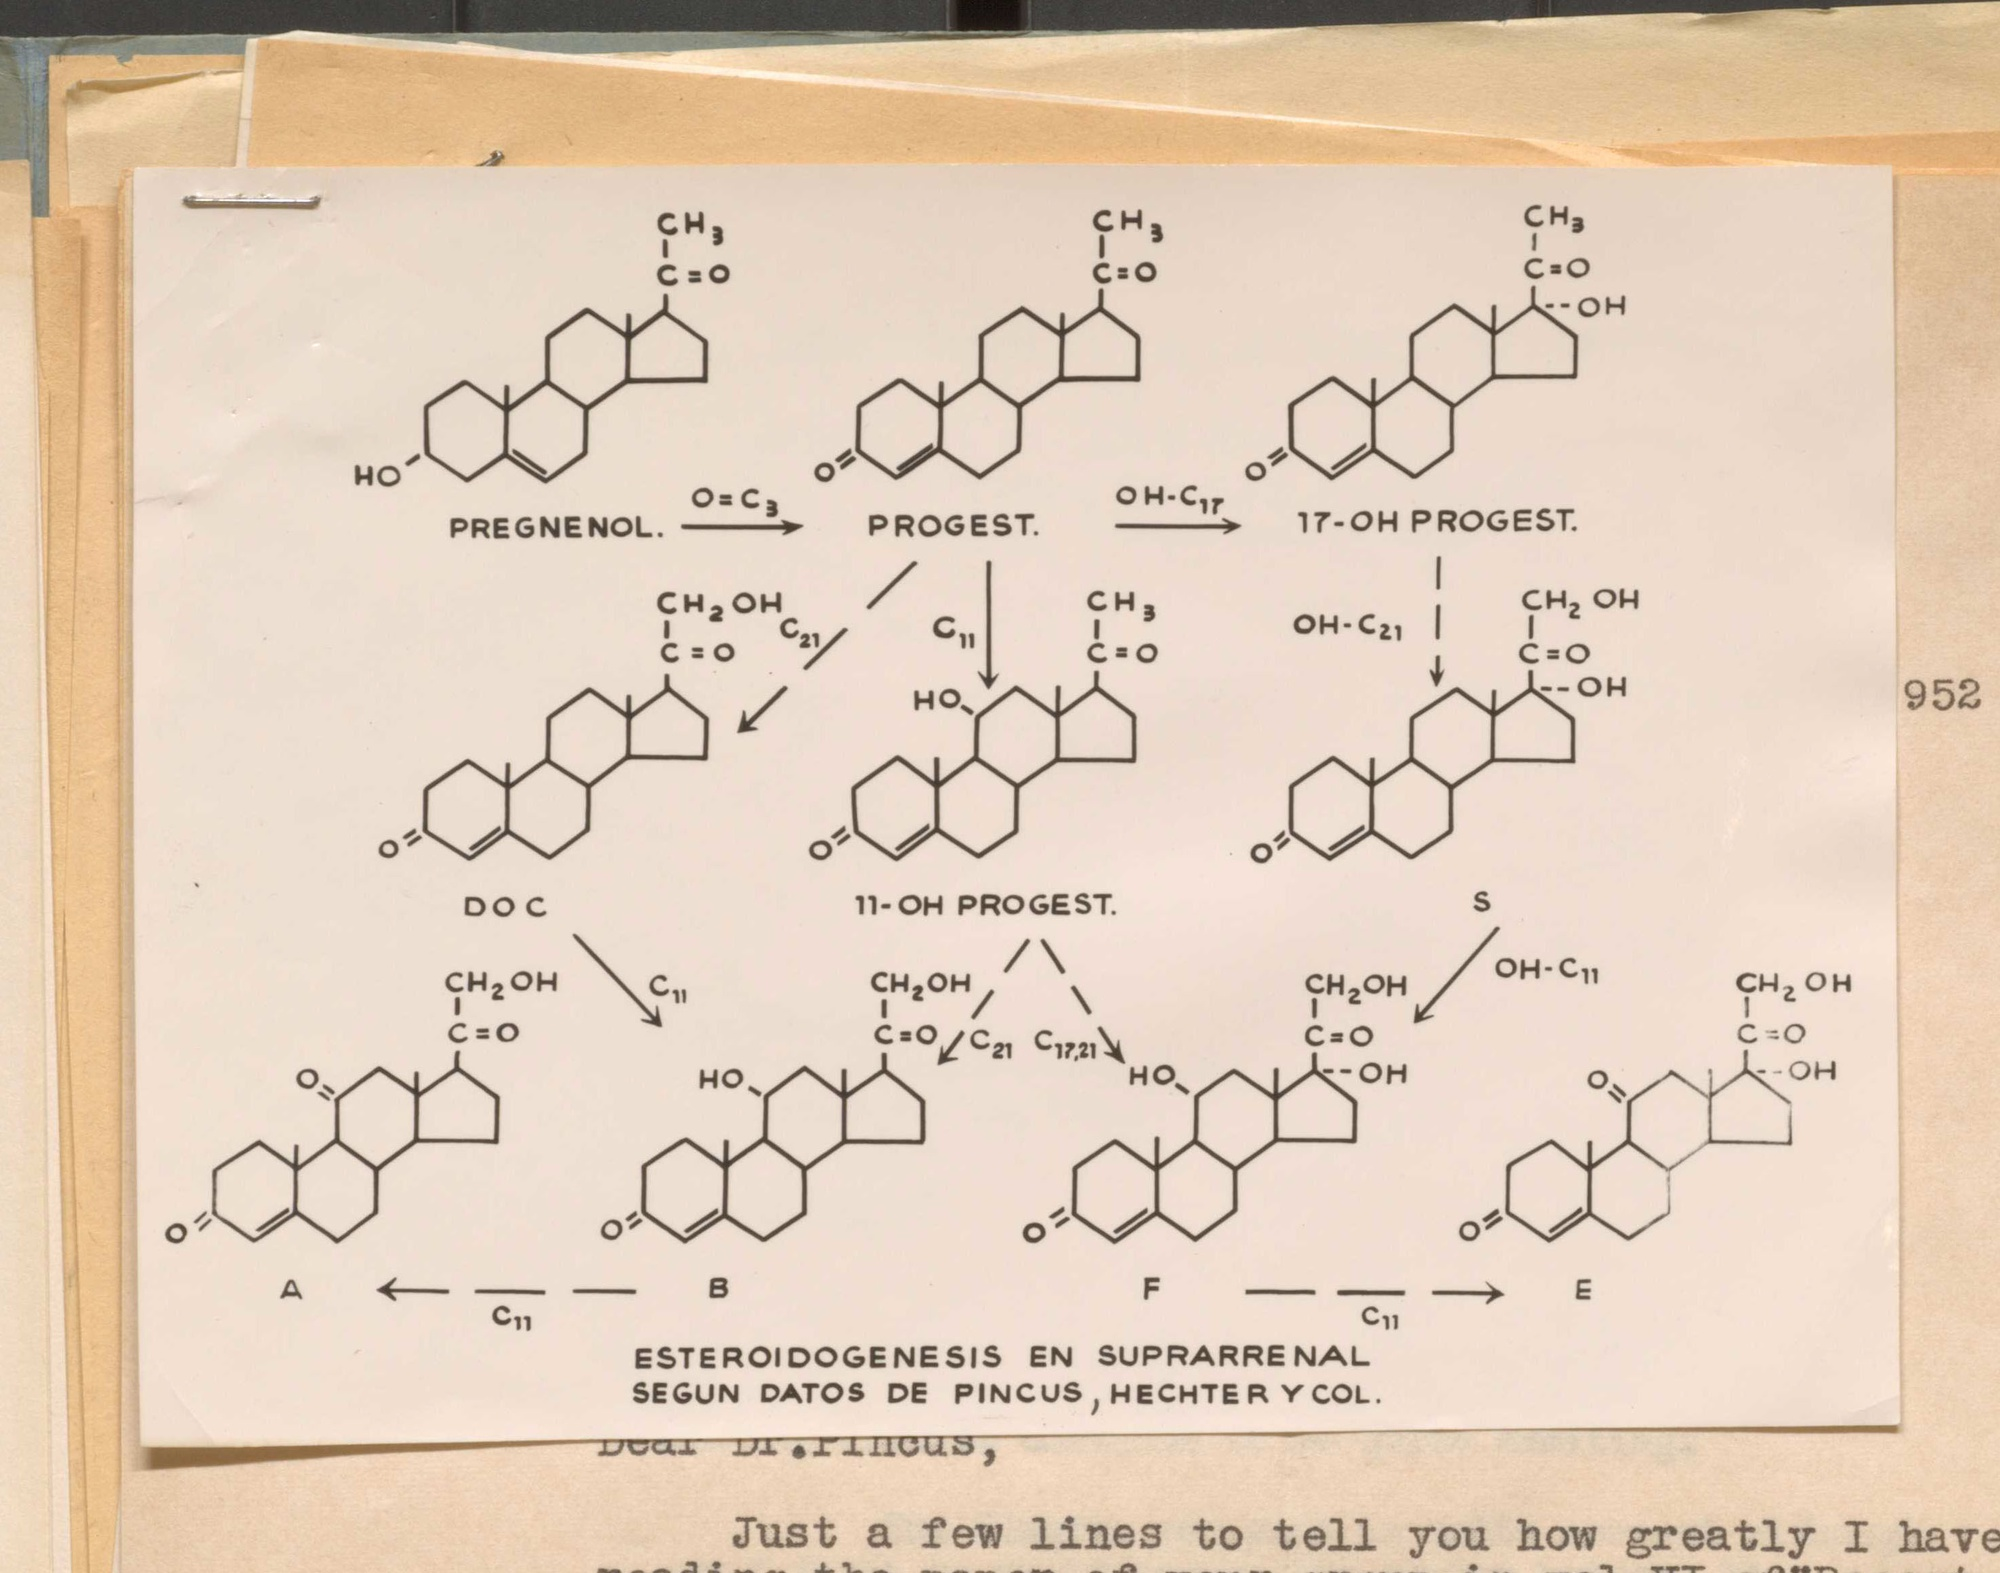 George C. Pincus and Min-Cheuh Chang tested a variety of these compounds, before settling on norethynodrel.